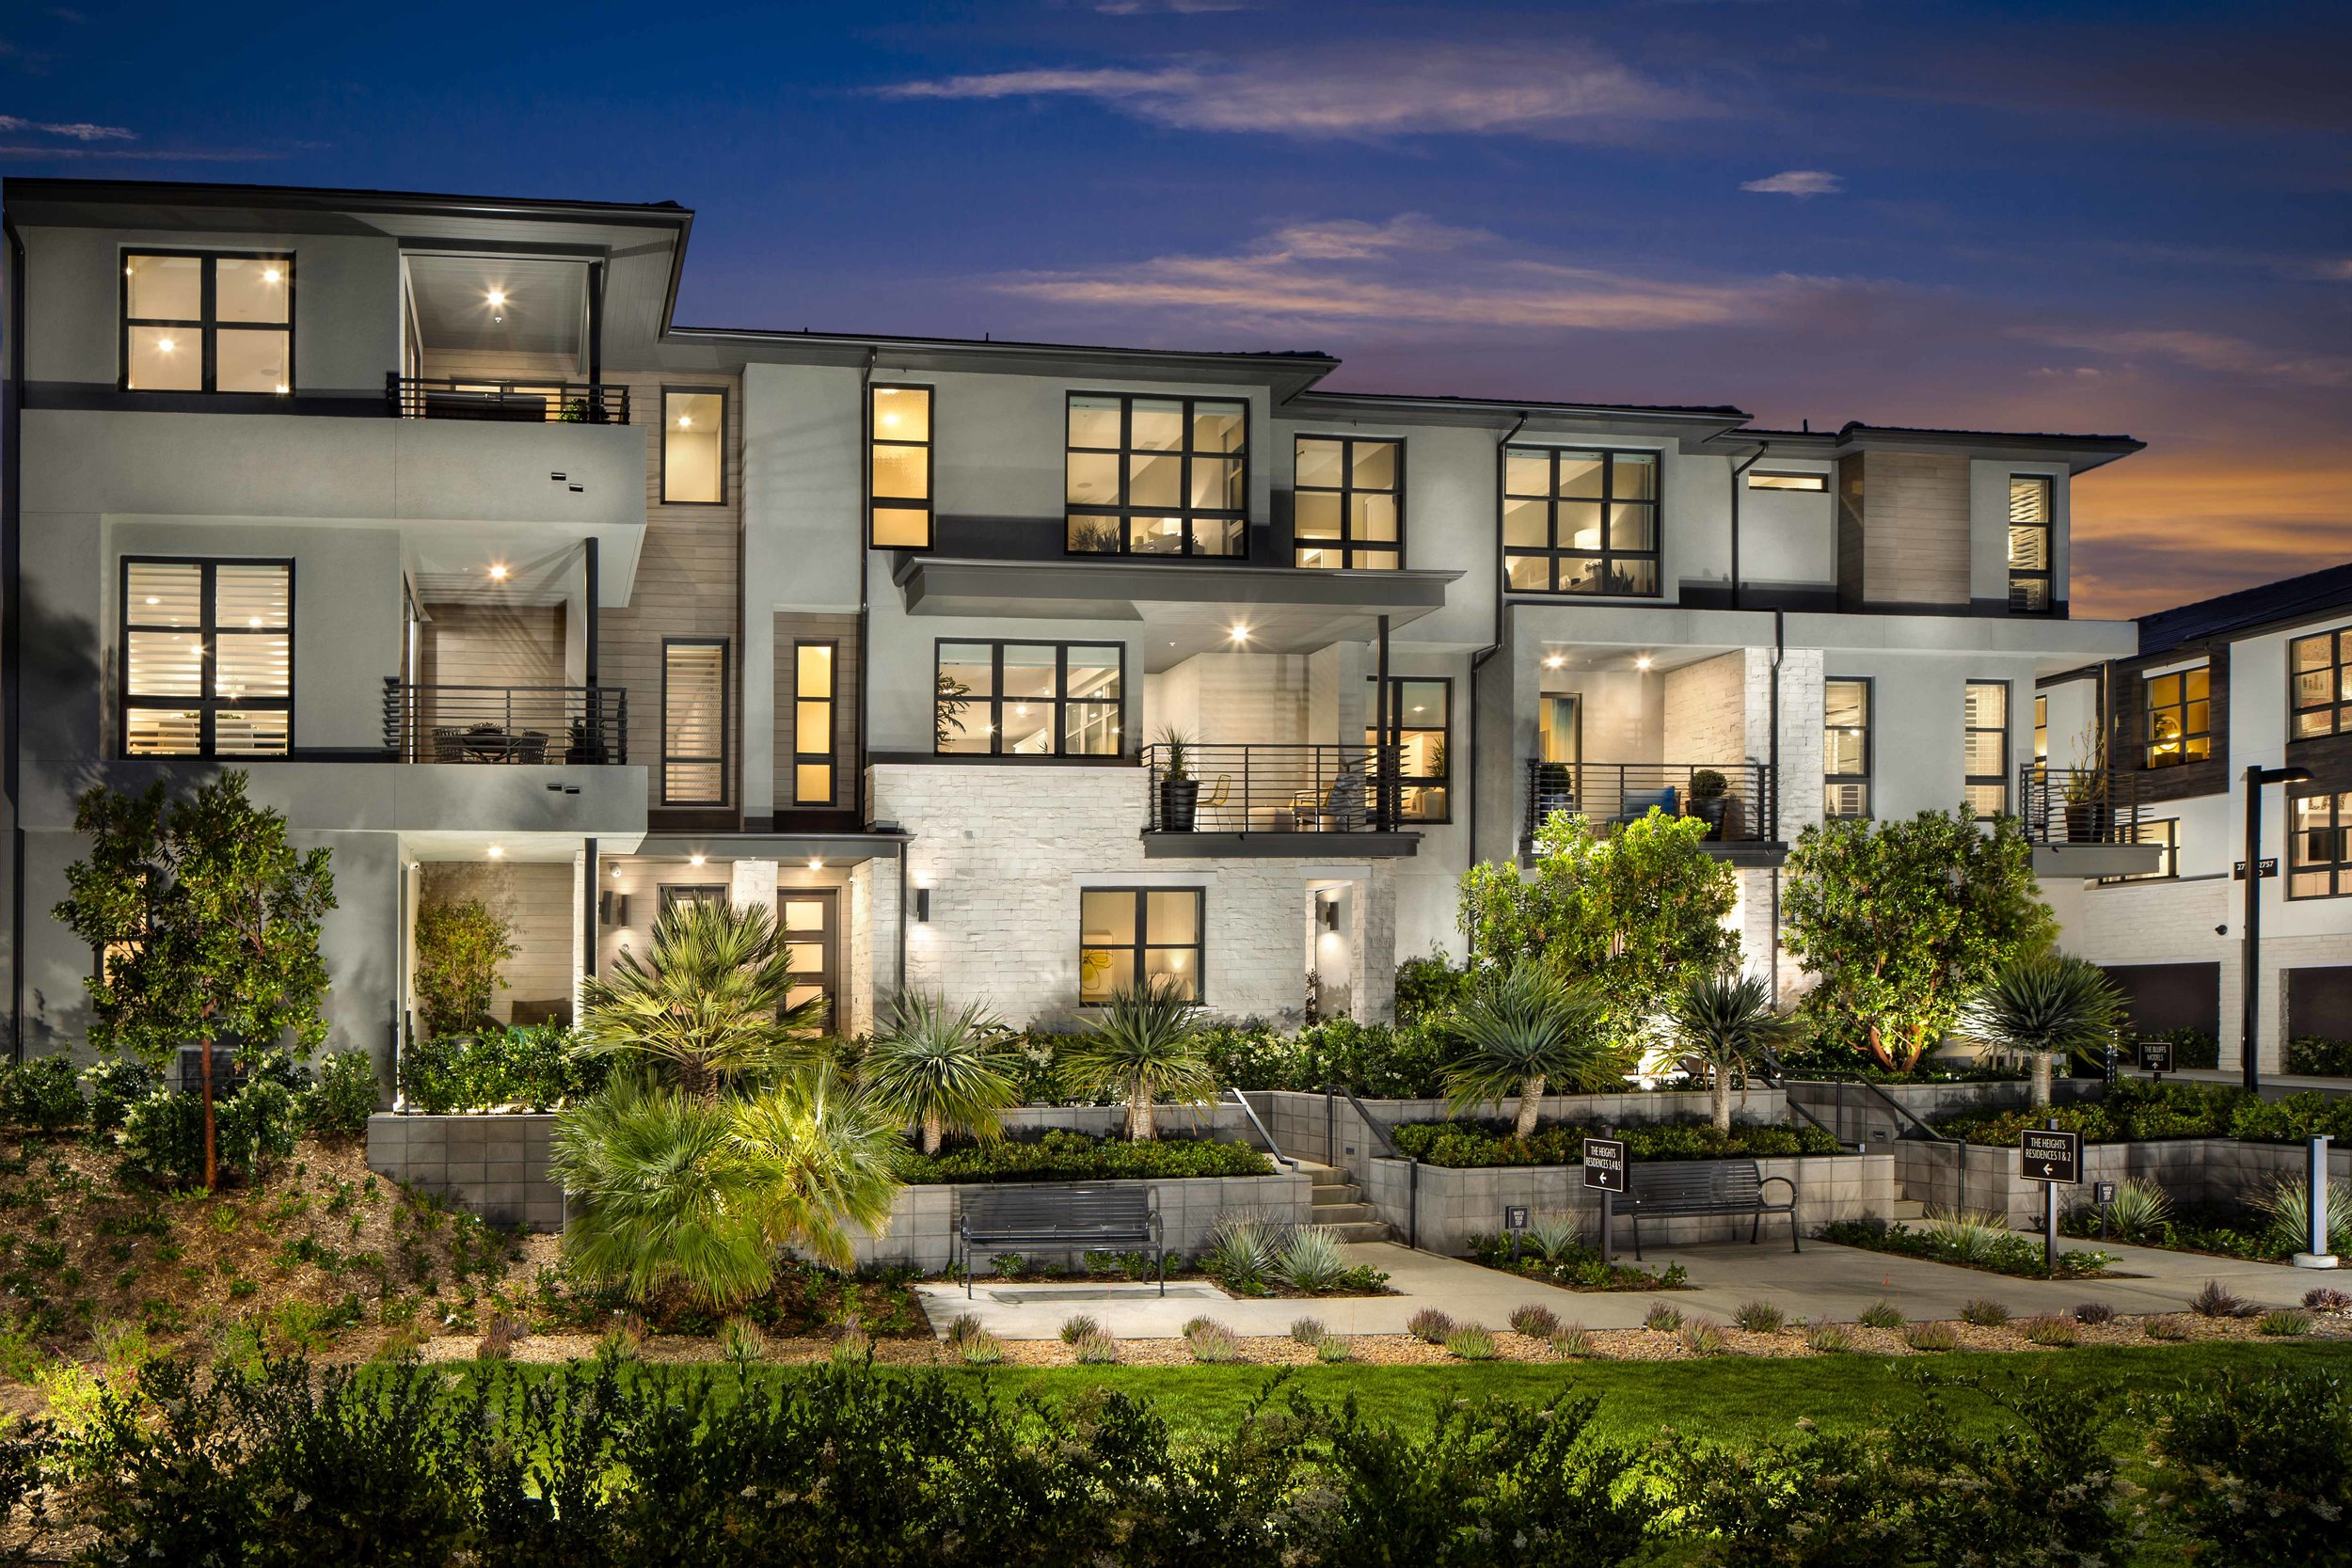 Promontory at Civita     San Diego, California     AWARDS    +   2019 National Gold Award  for Multi-Family Community of the Year  +  2018 Best in American Living Platinum  for Multi-Family Community of the Year  +  2018 SoCal Award  for Attached Community of the Year   + 2018 Icon Award  for  Attached Community of the Year